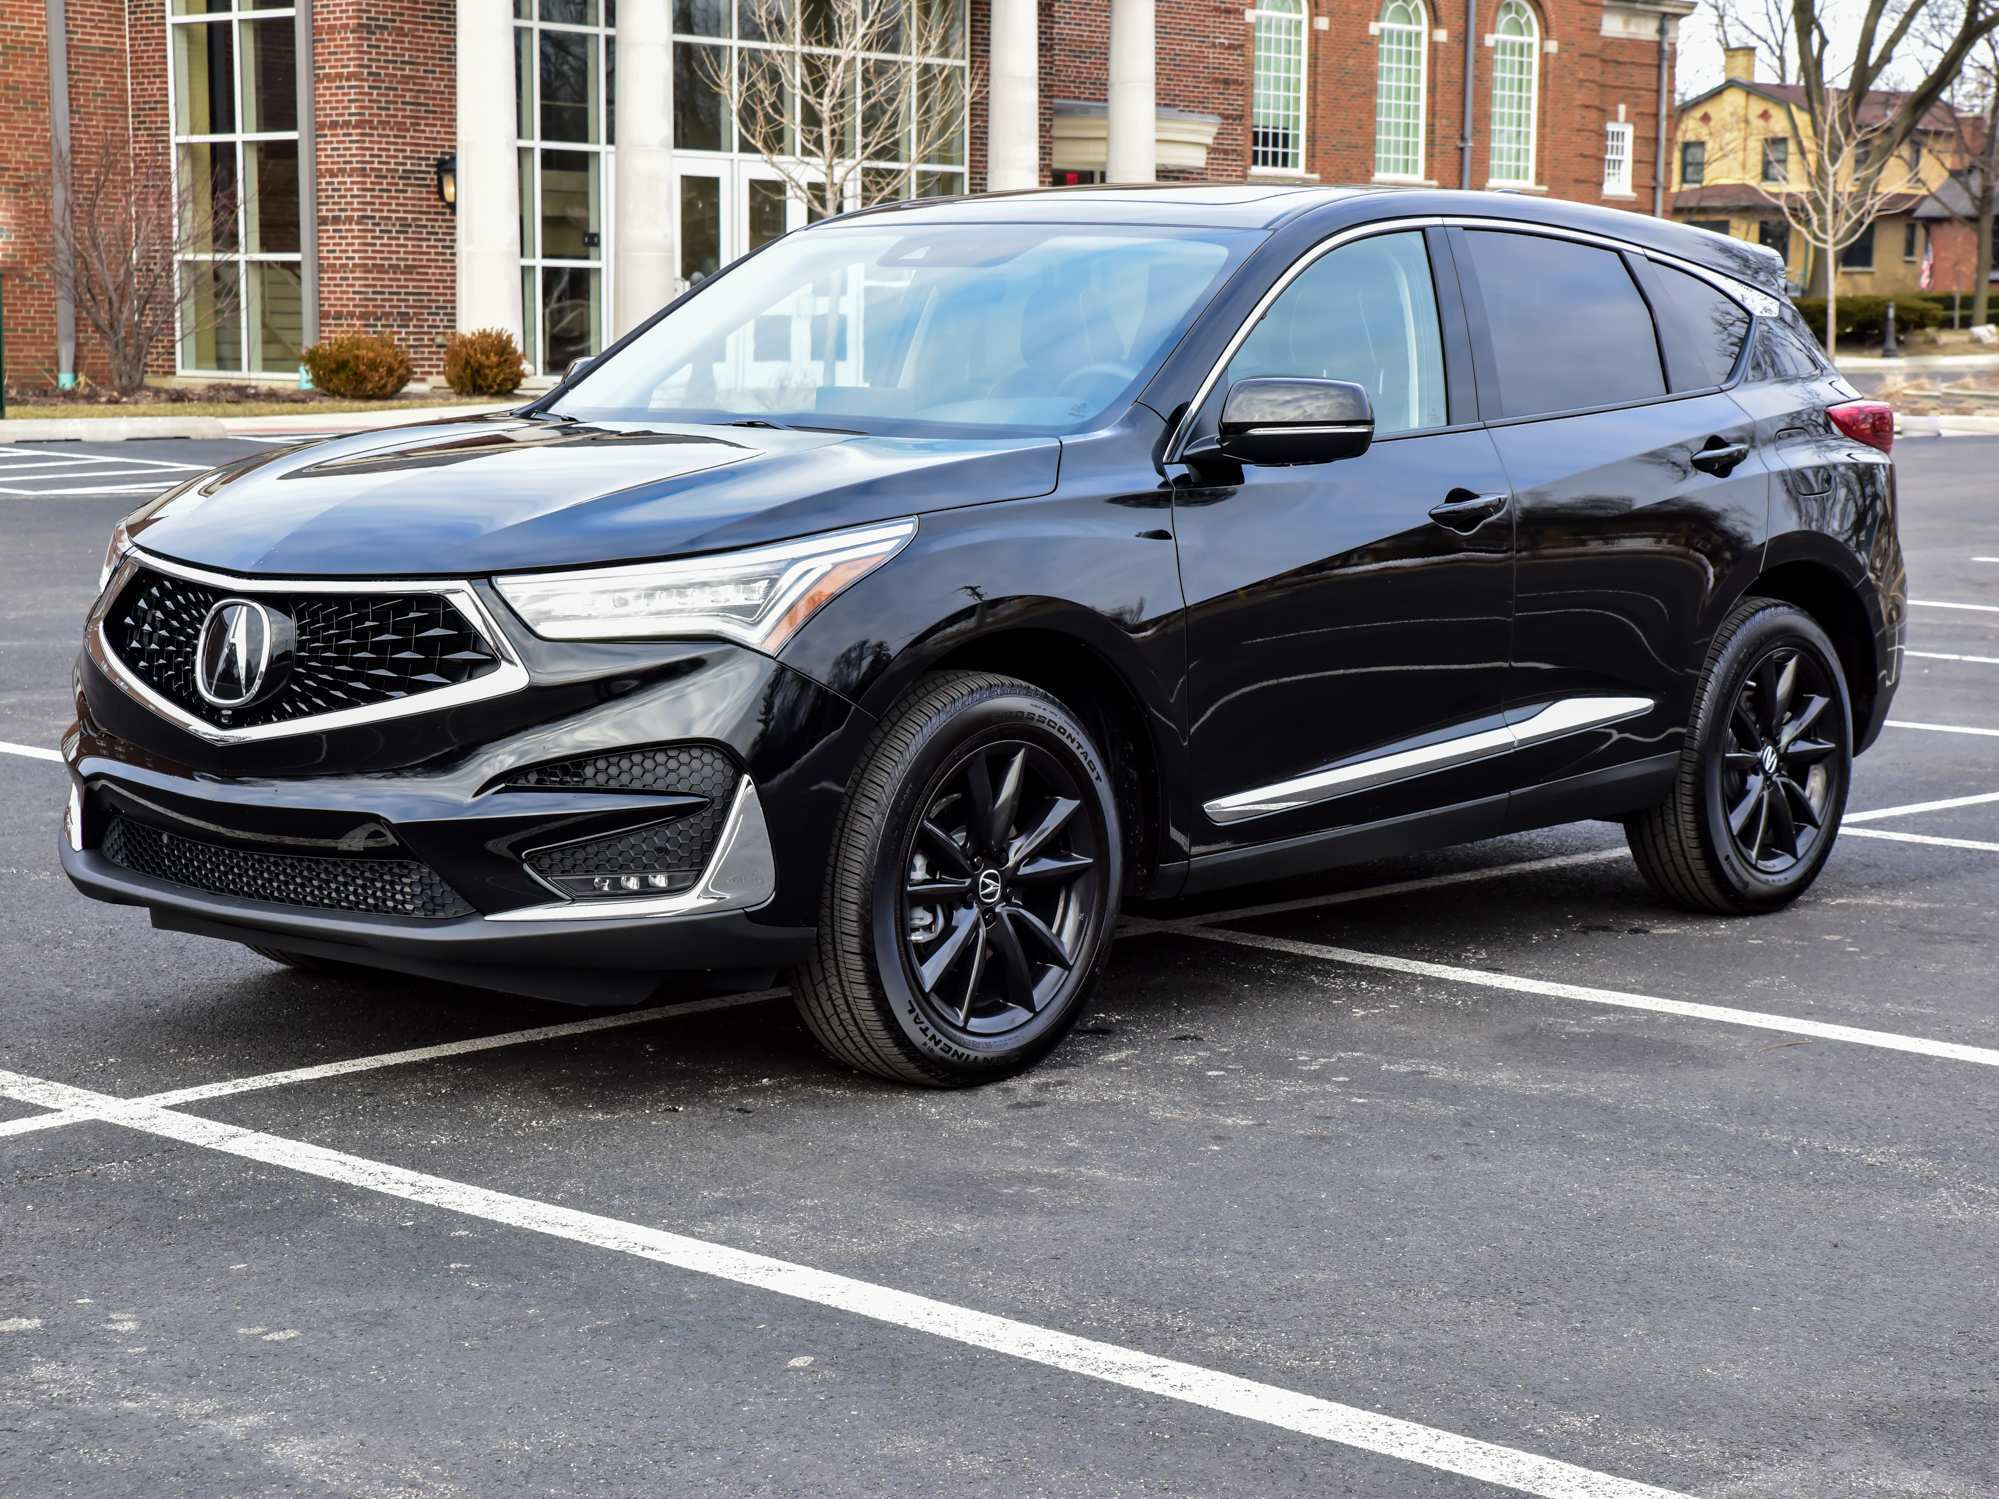 29 Concept of The Acura Rdx 2019 Lane Keep Assist Review Redesign by The Acura Rdx 2019 Lane Keep Assist Review